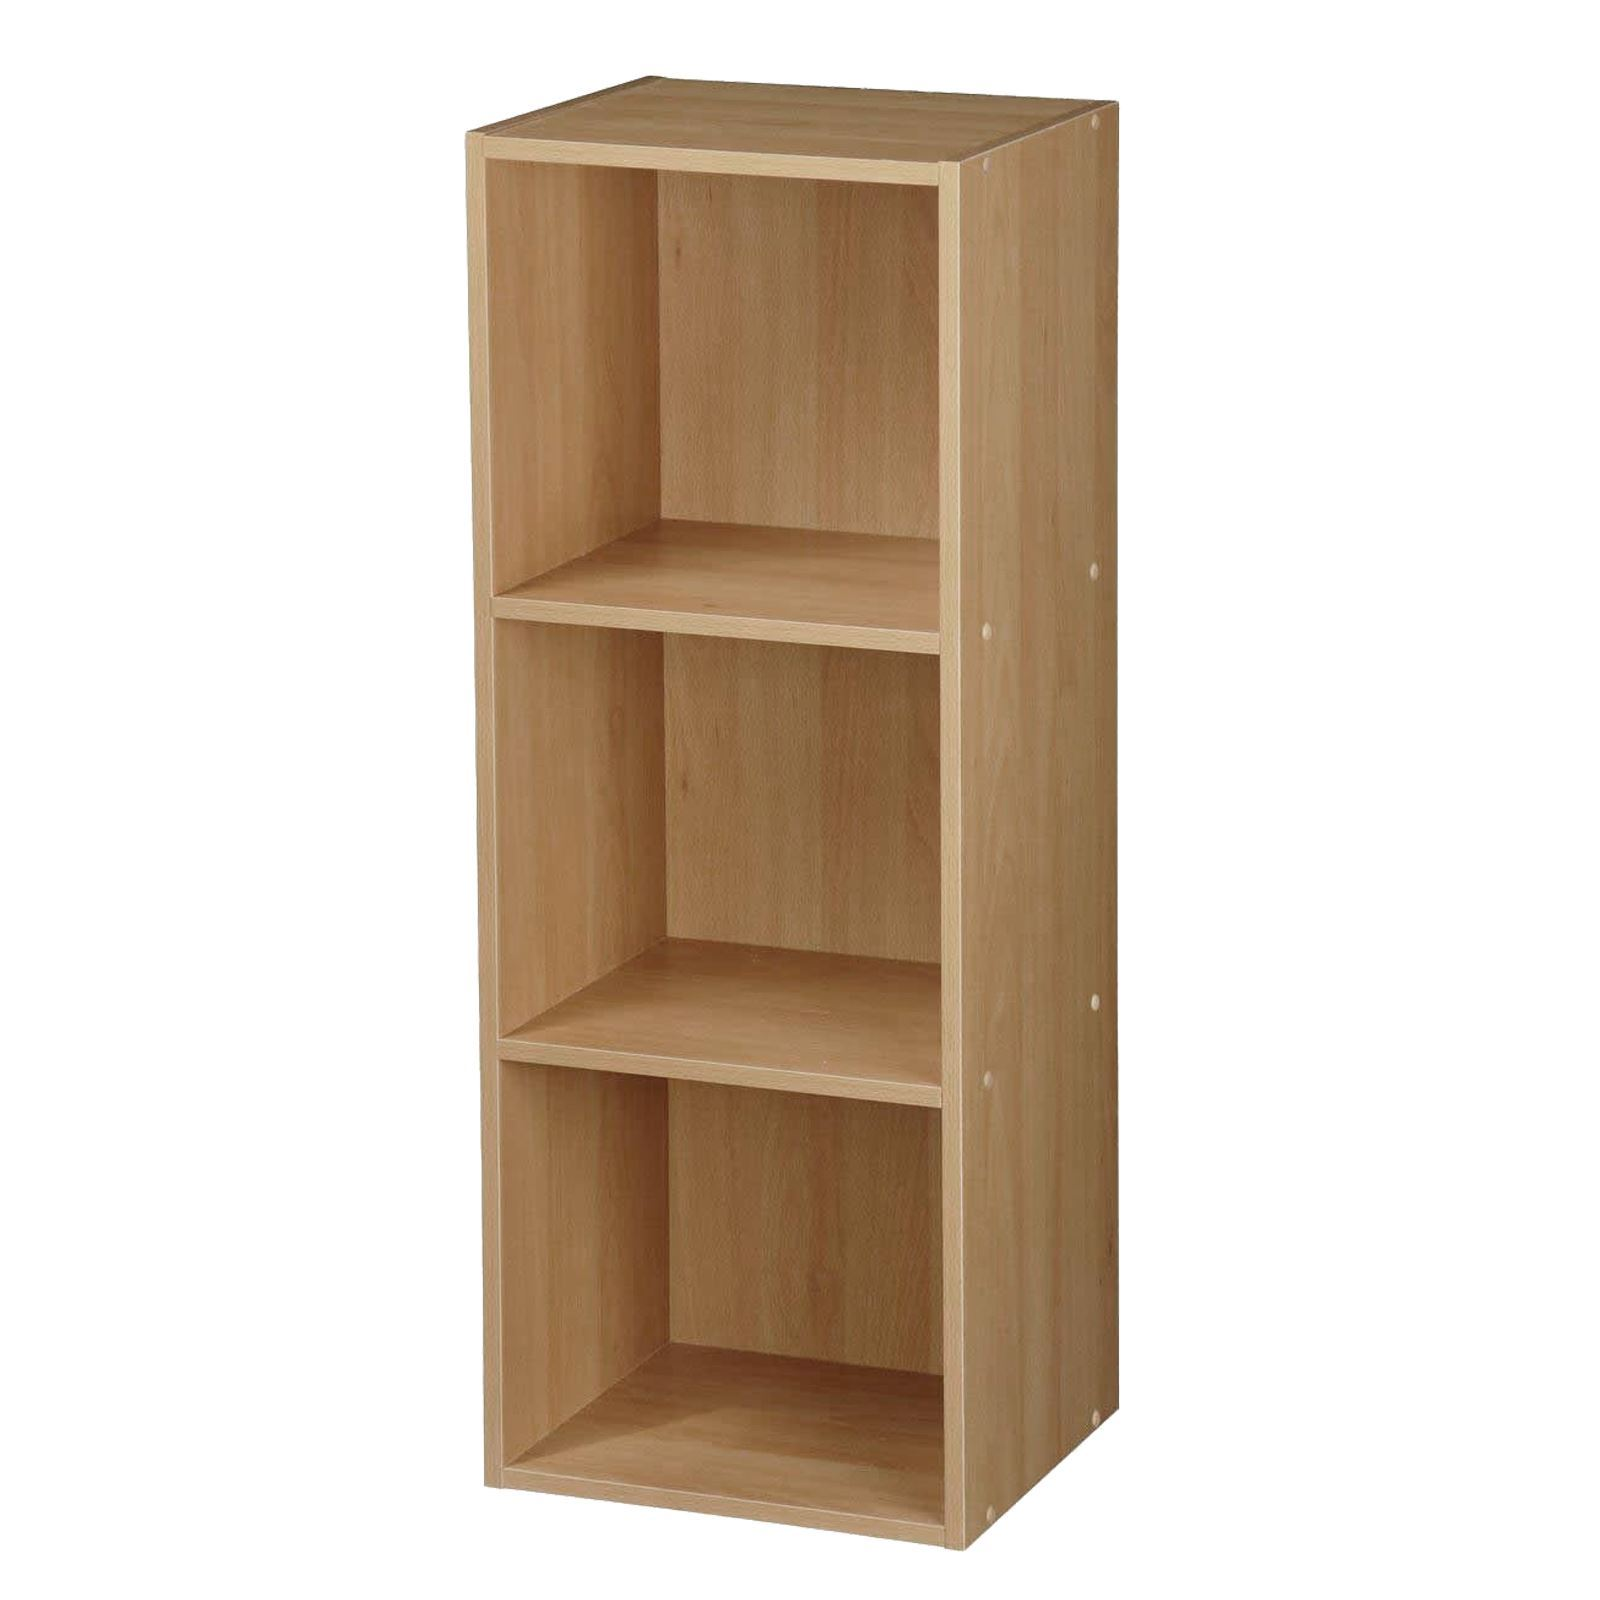 Wooden-Storage-Unit-Cube-2-3-4-Tier-Strong-Bookcase-Shelving-Home-Office-Display thumbnail 24